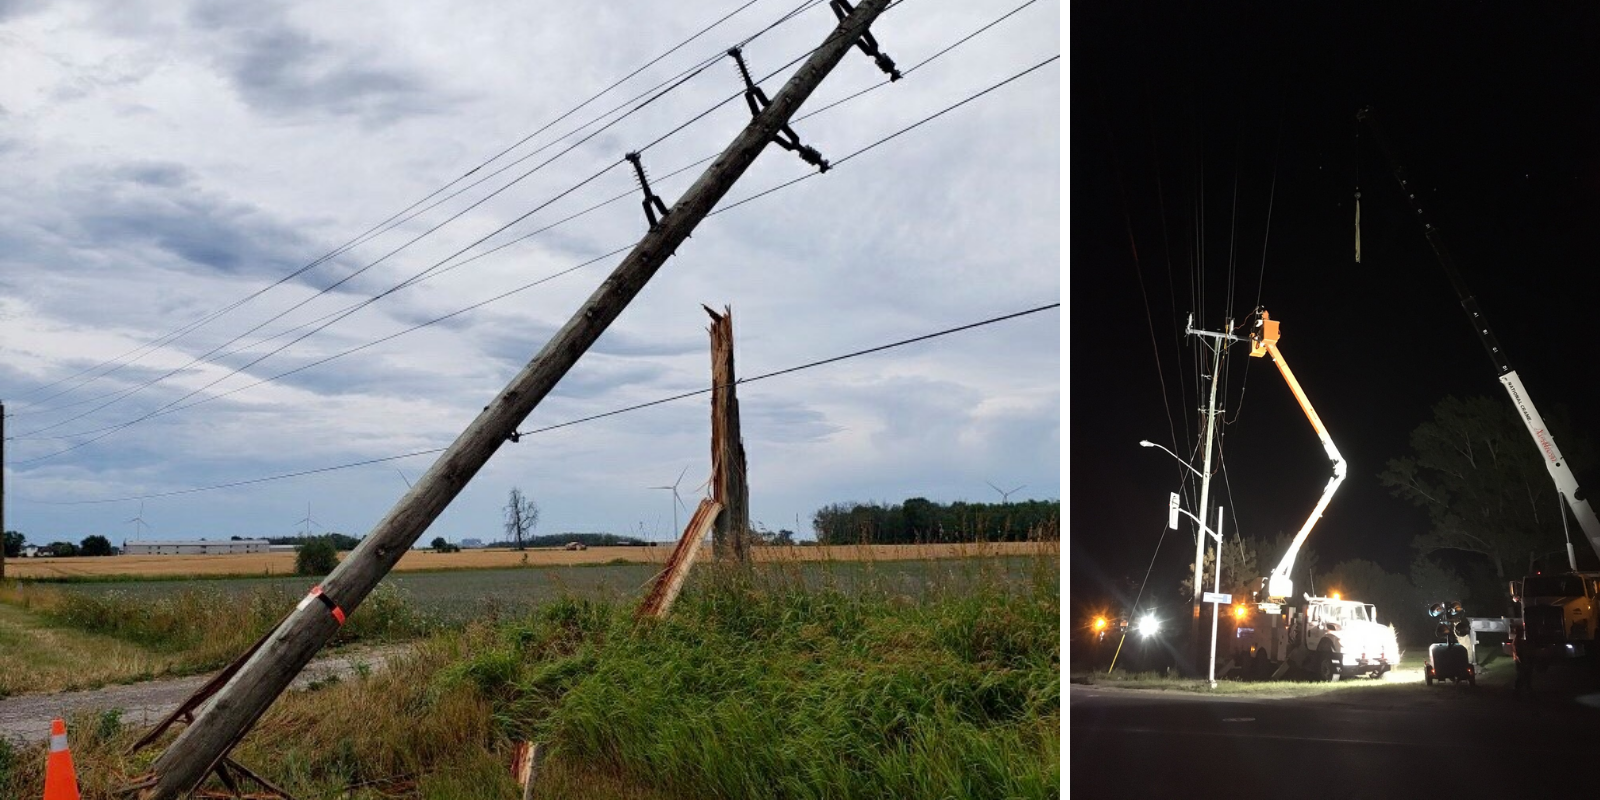 Hydro One working to restore power to more than 200,000 Ontarians following wind storm